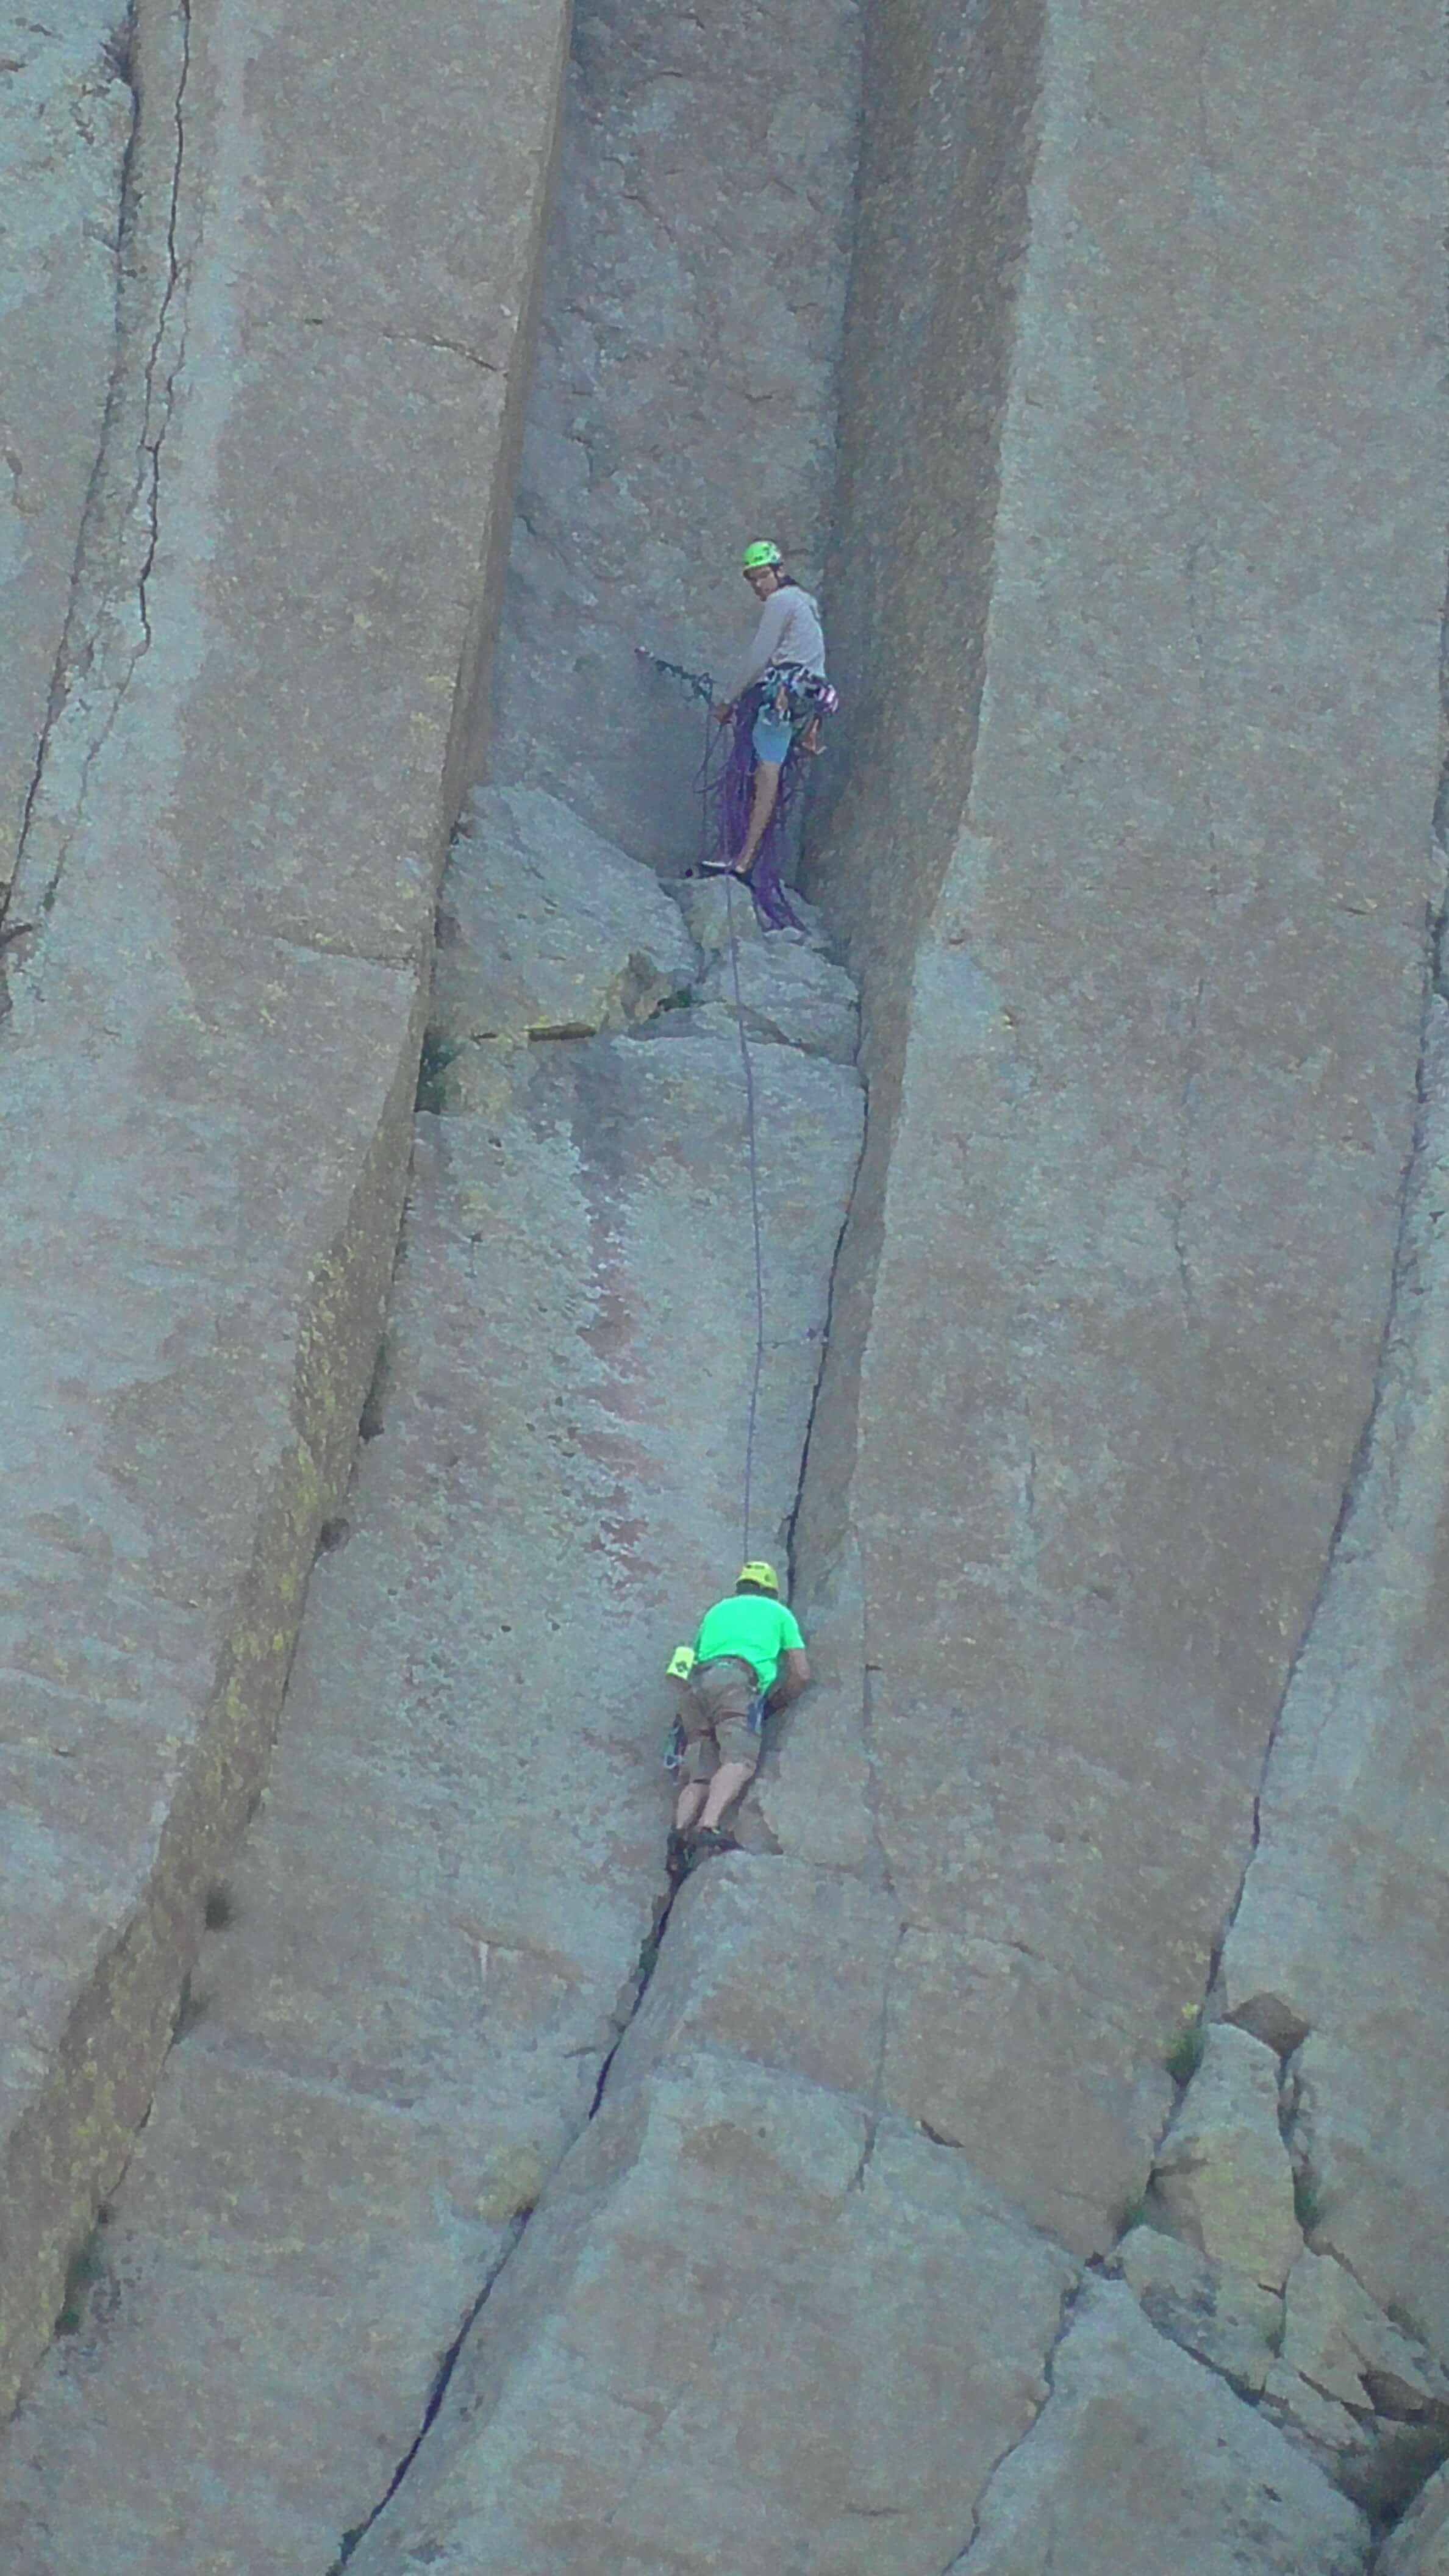 Two climbers